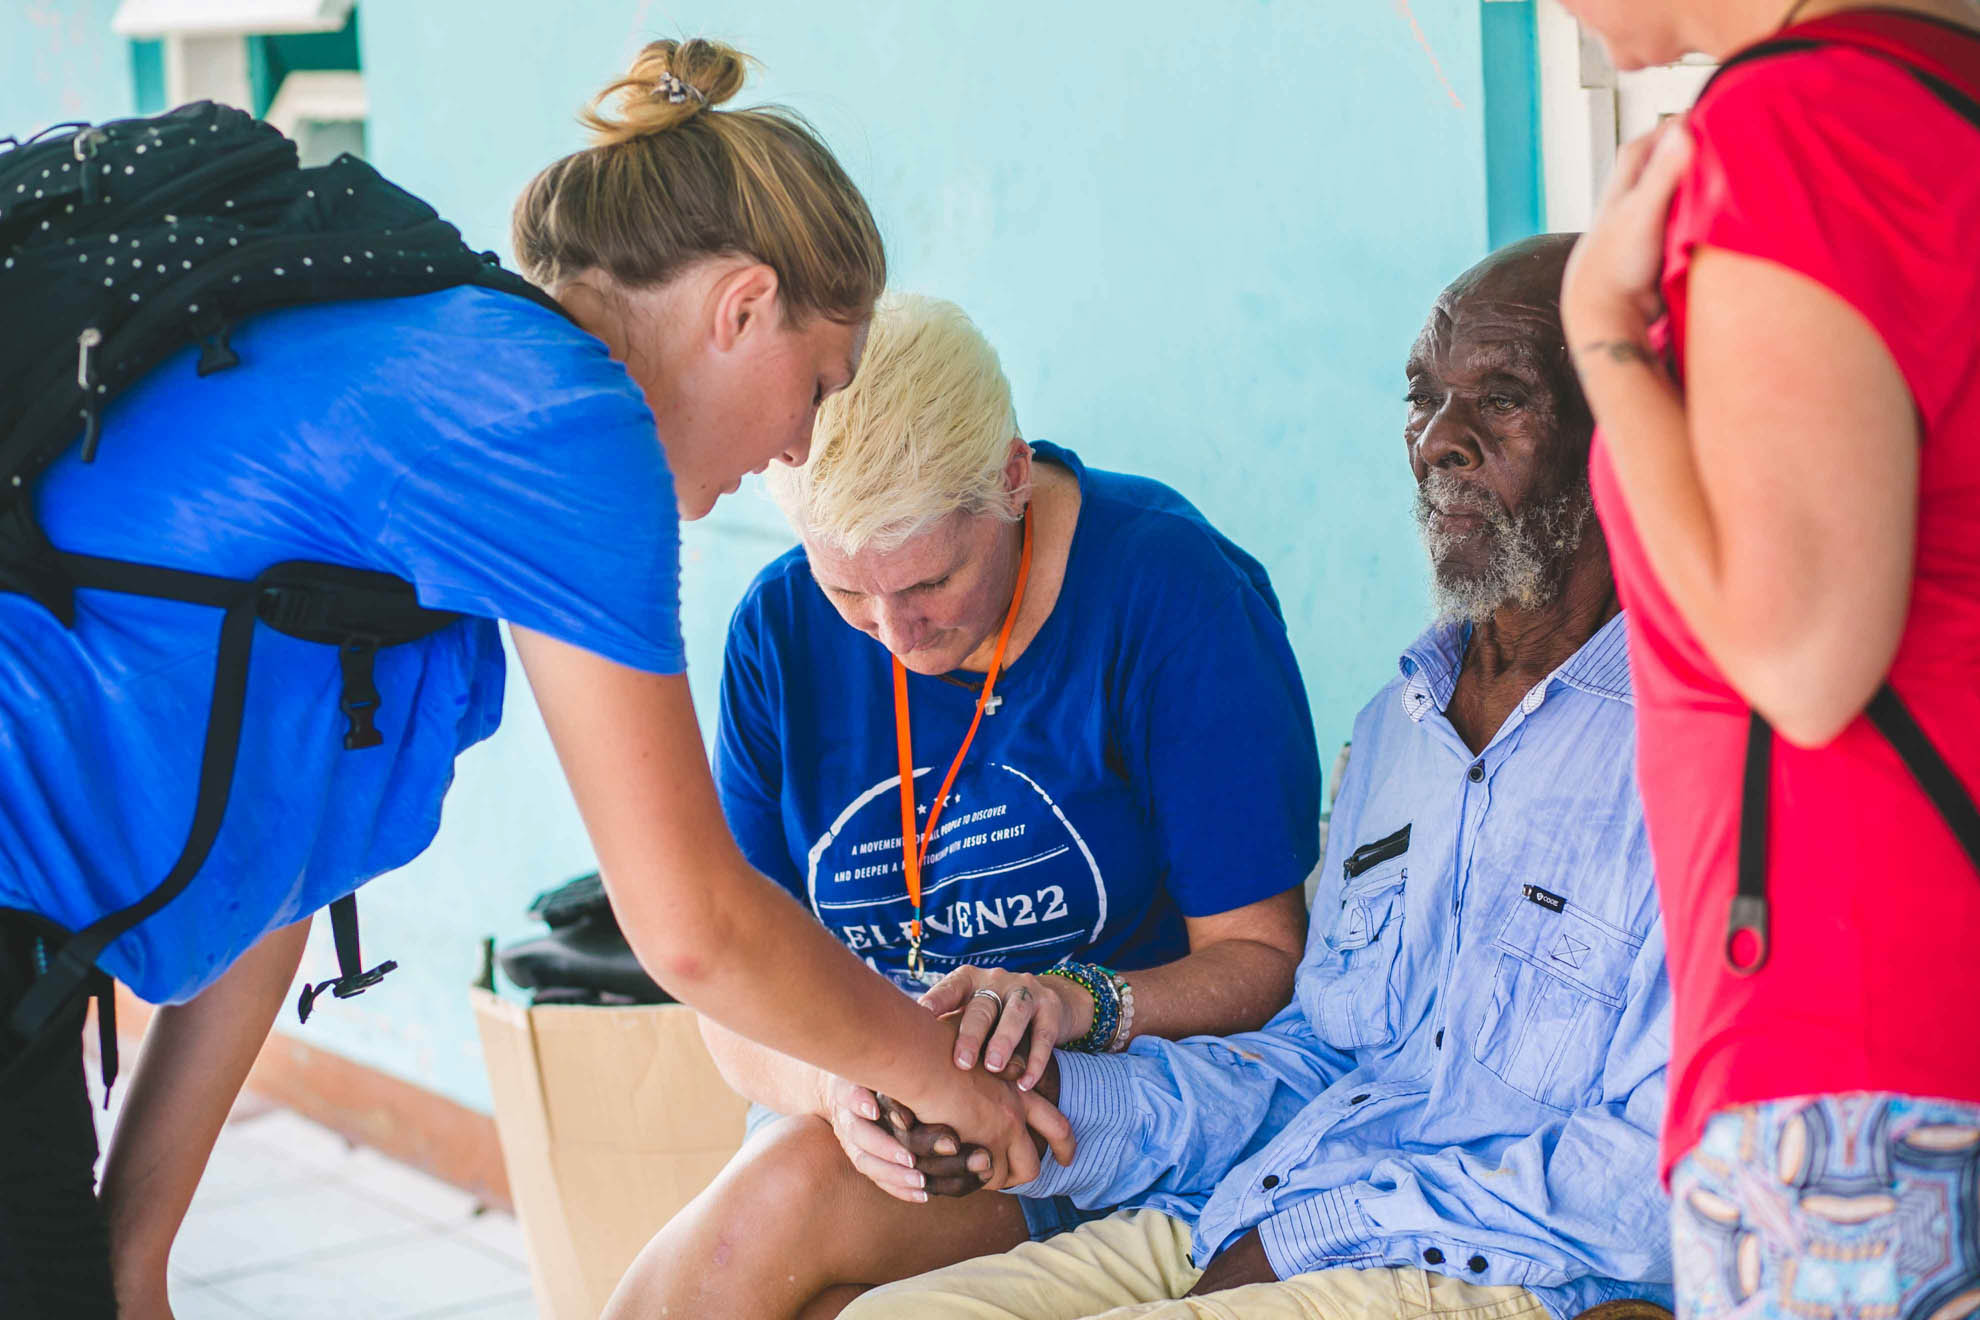 eleven22-missions-jamaica-infirmary-poverty-adam-szarmack-131.jpg